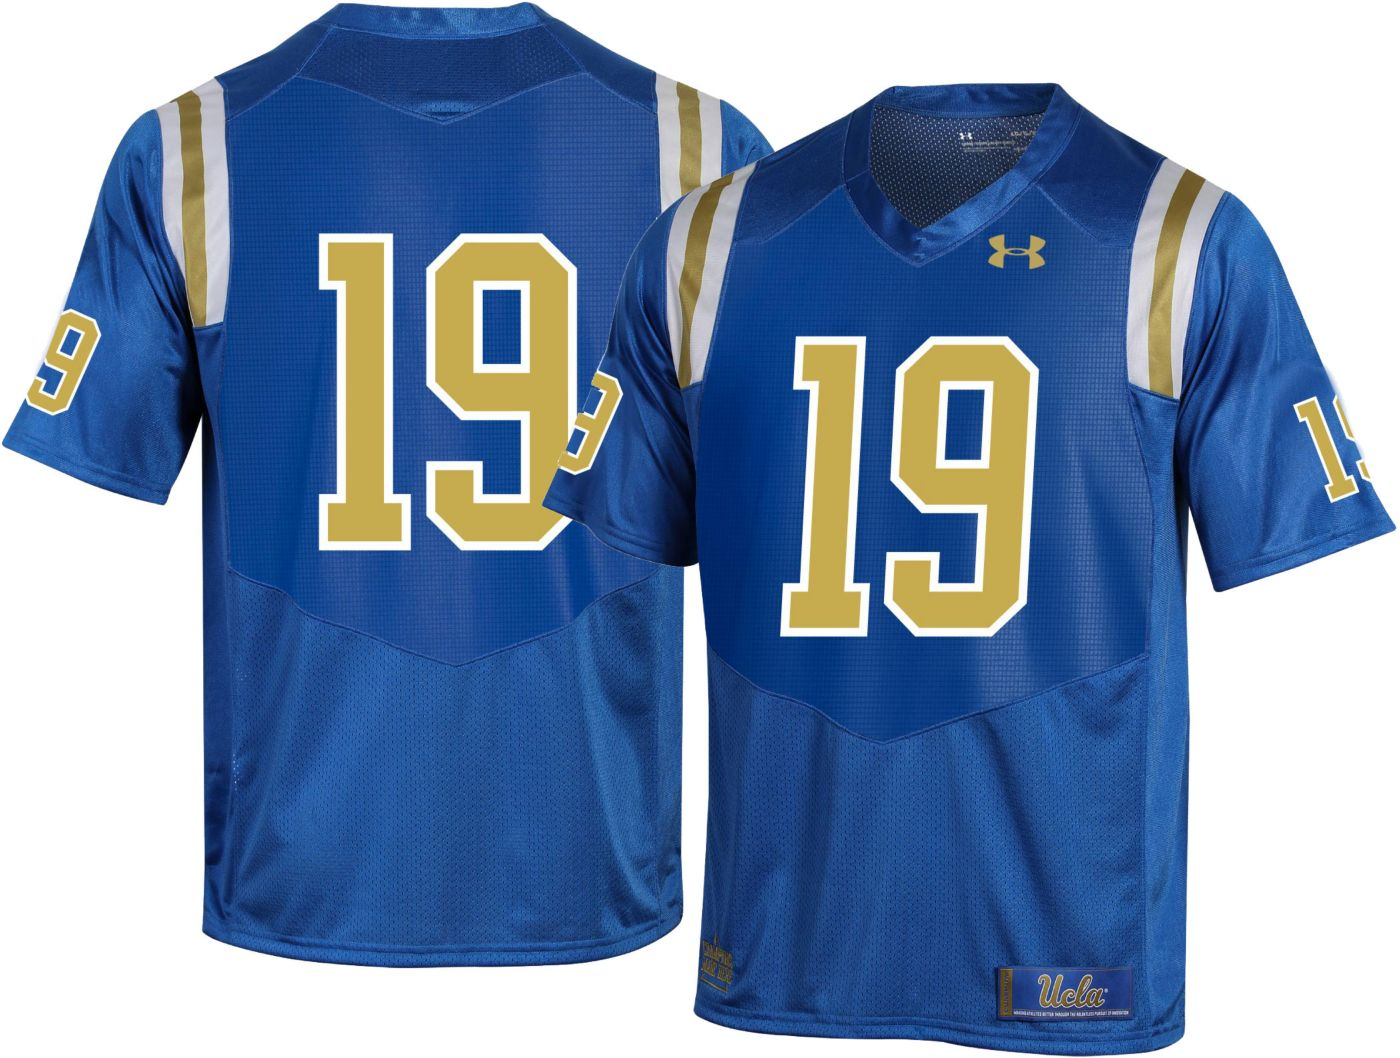 Under Armour Men's UCLA Bruins #19 True Blue Replica Football Jersey